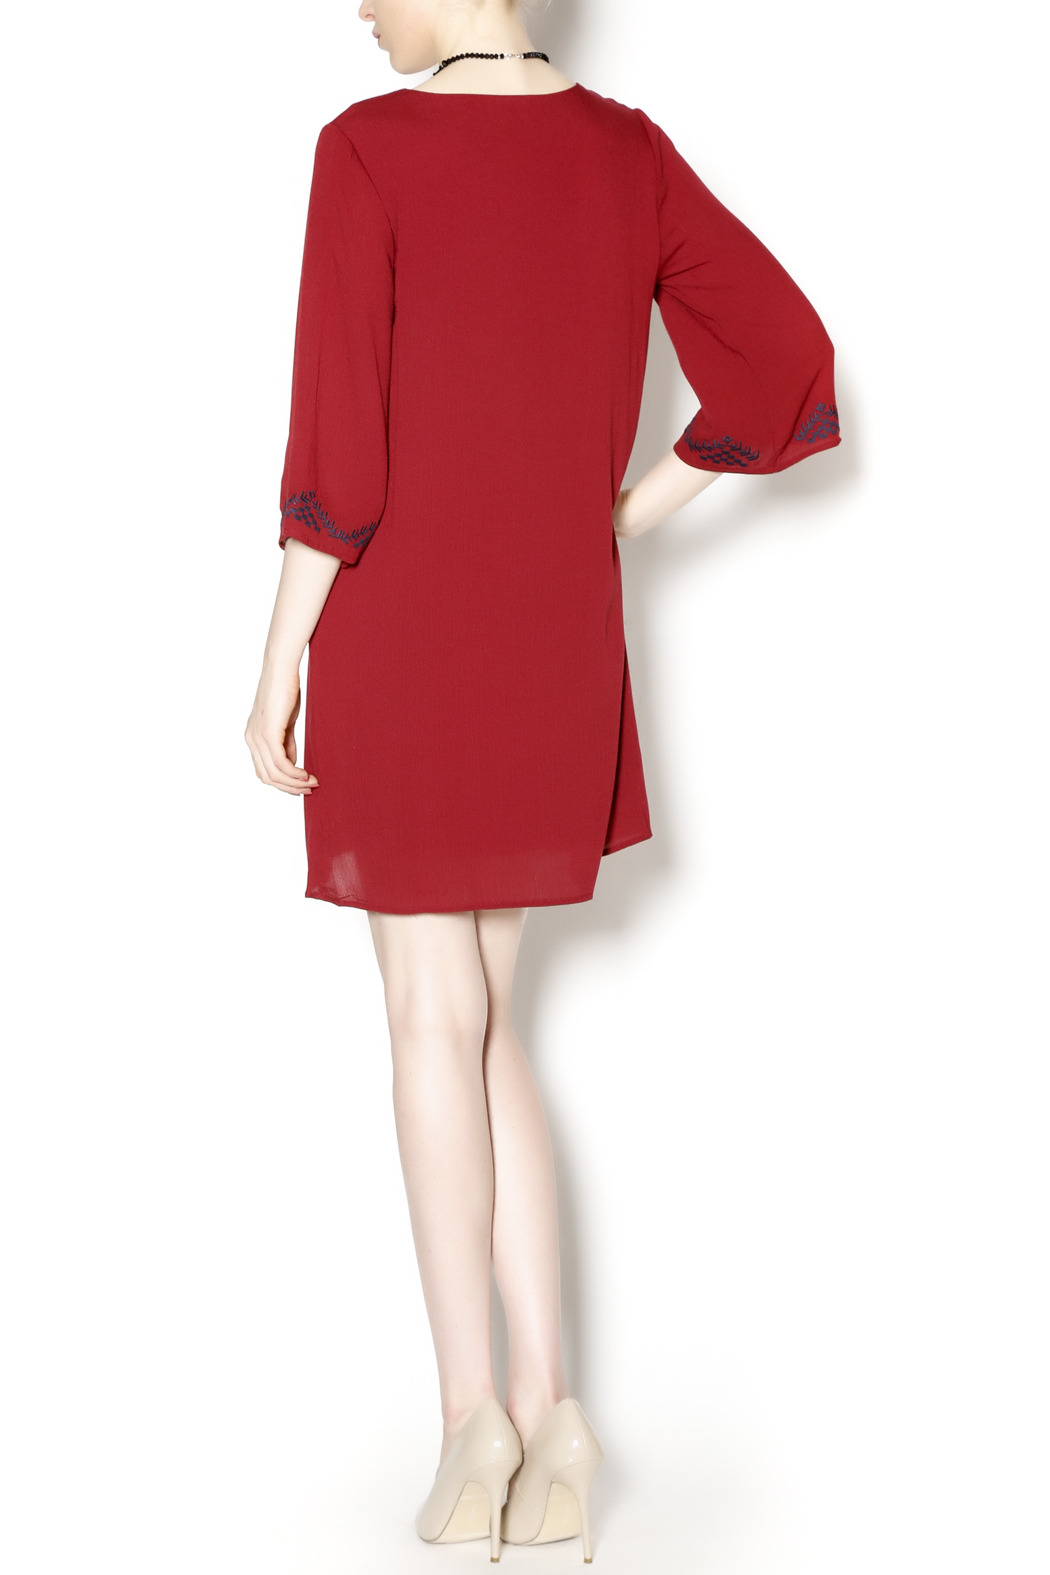 Final Touch Embroidered Red Gauze Dress - Side Cropped Image